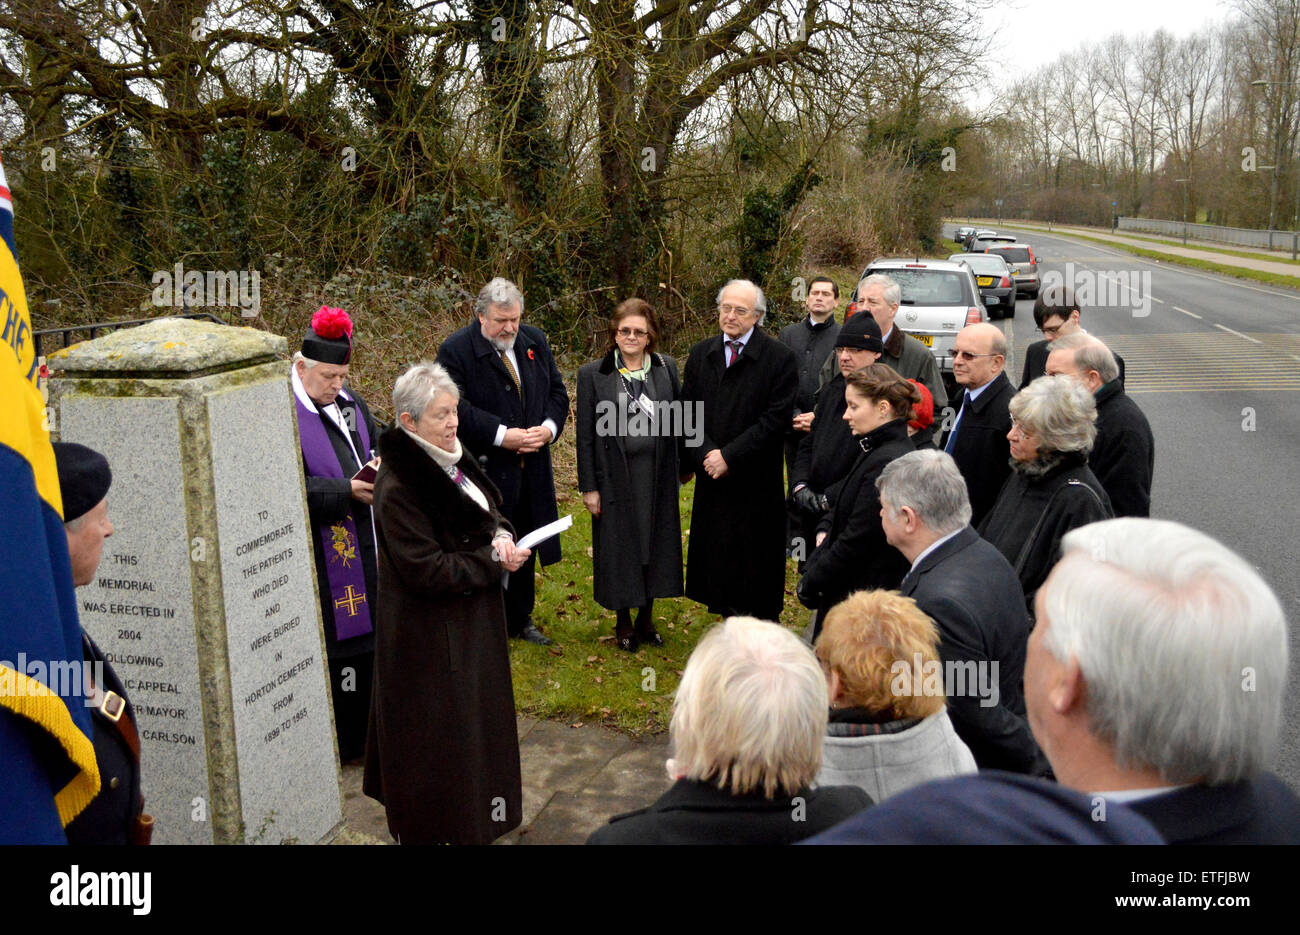 A blessing of the unmarked graves of 35 Polish servicemen takes place at Horton Cemetery. Bought by developers in - Stock Image